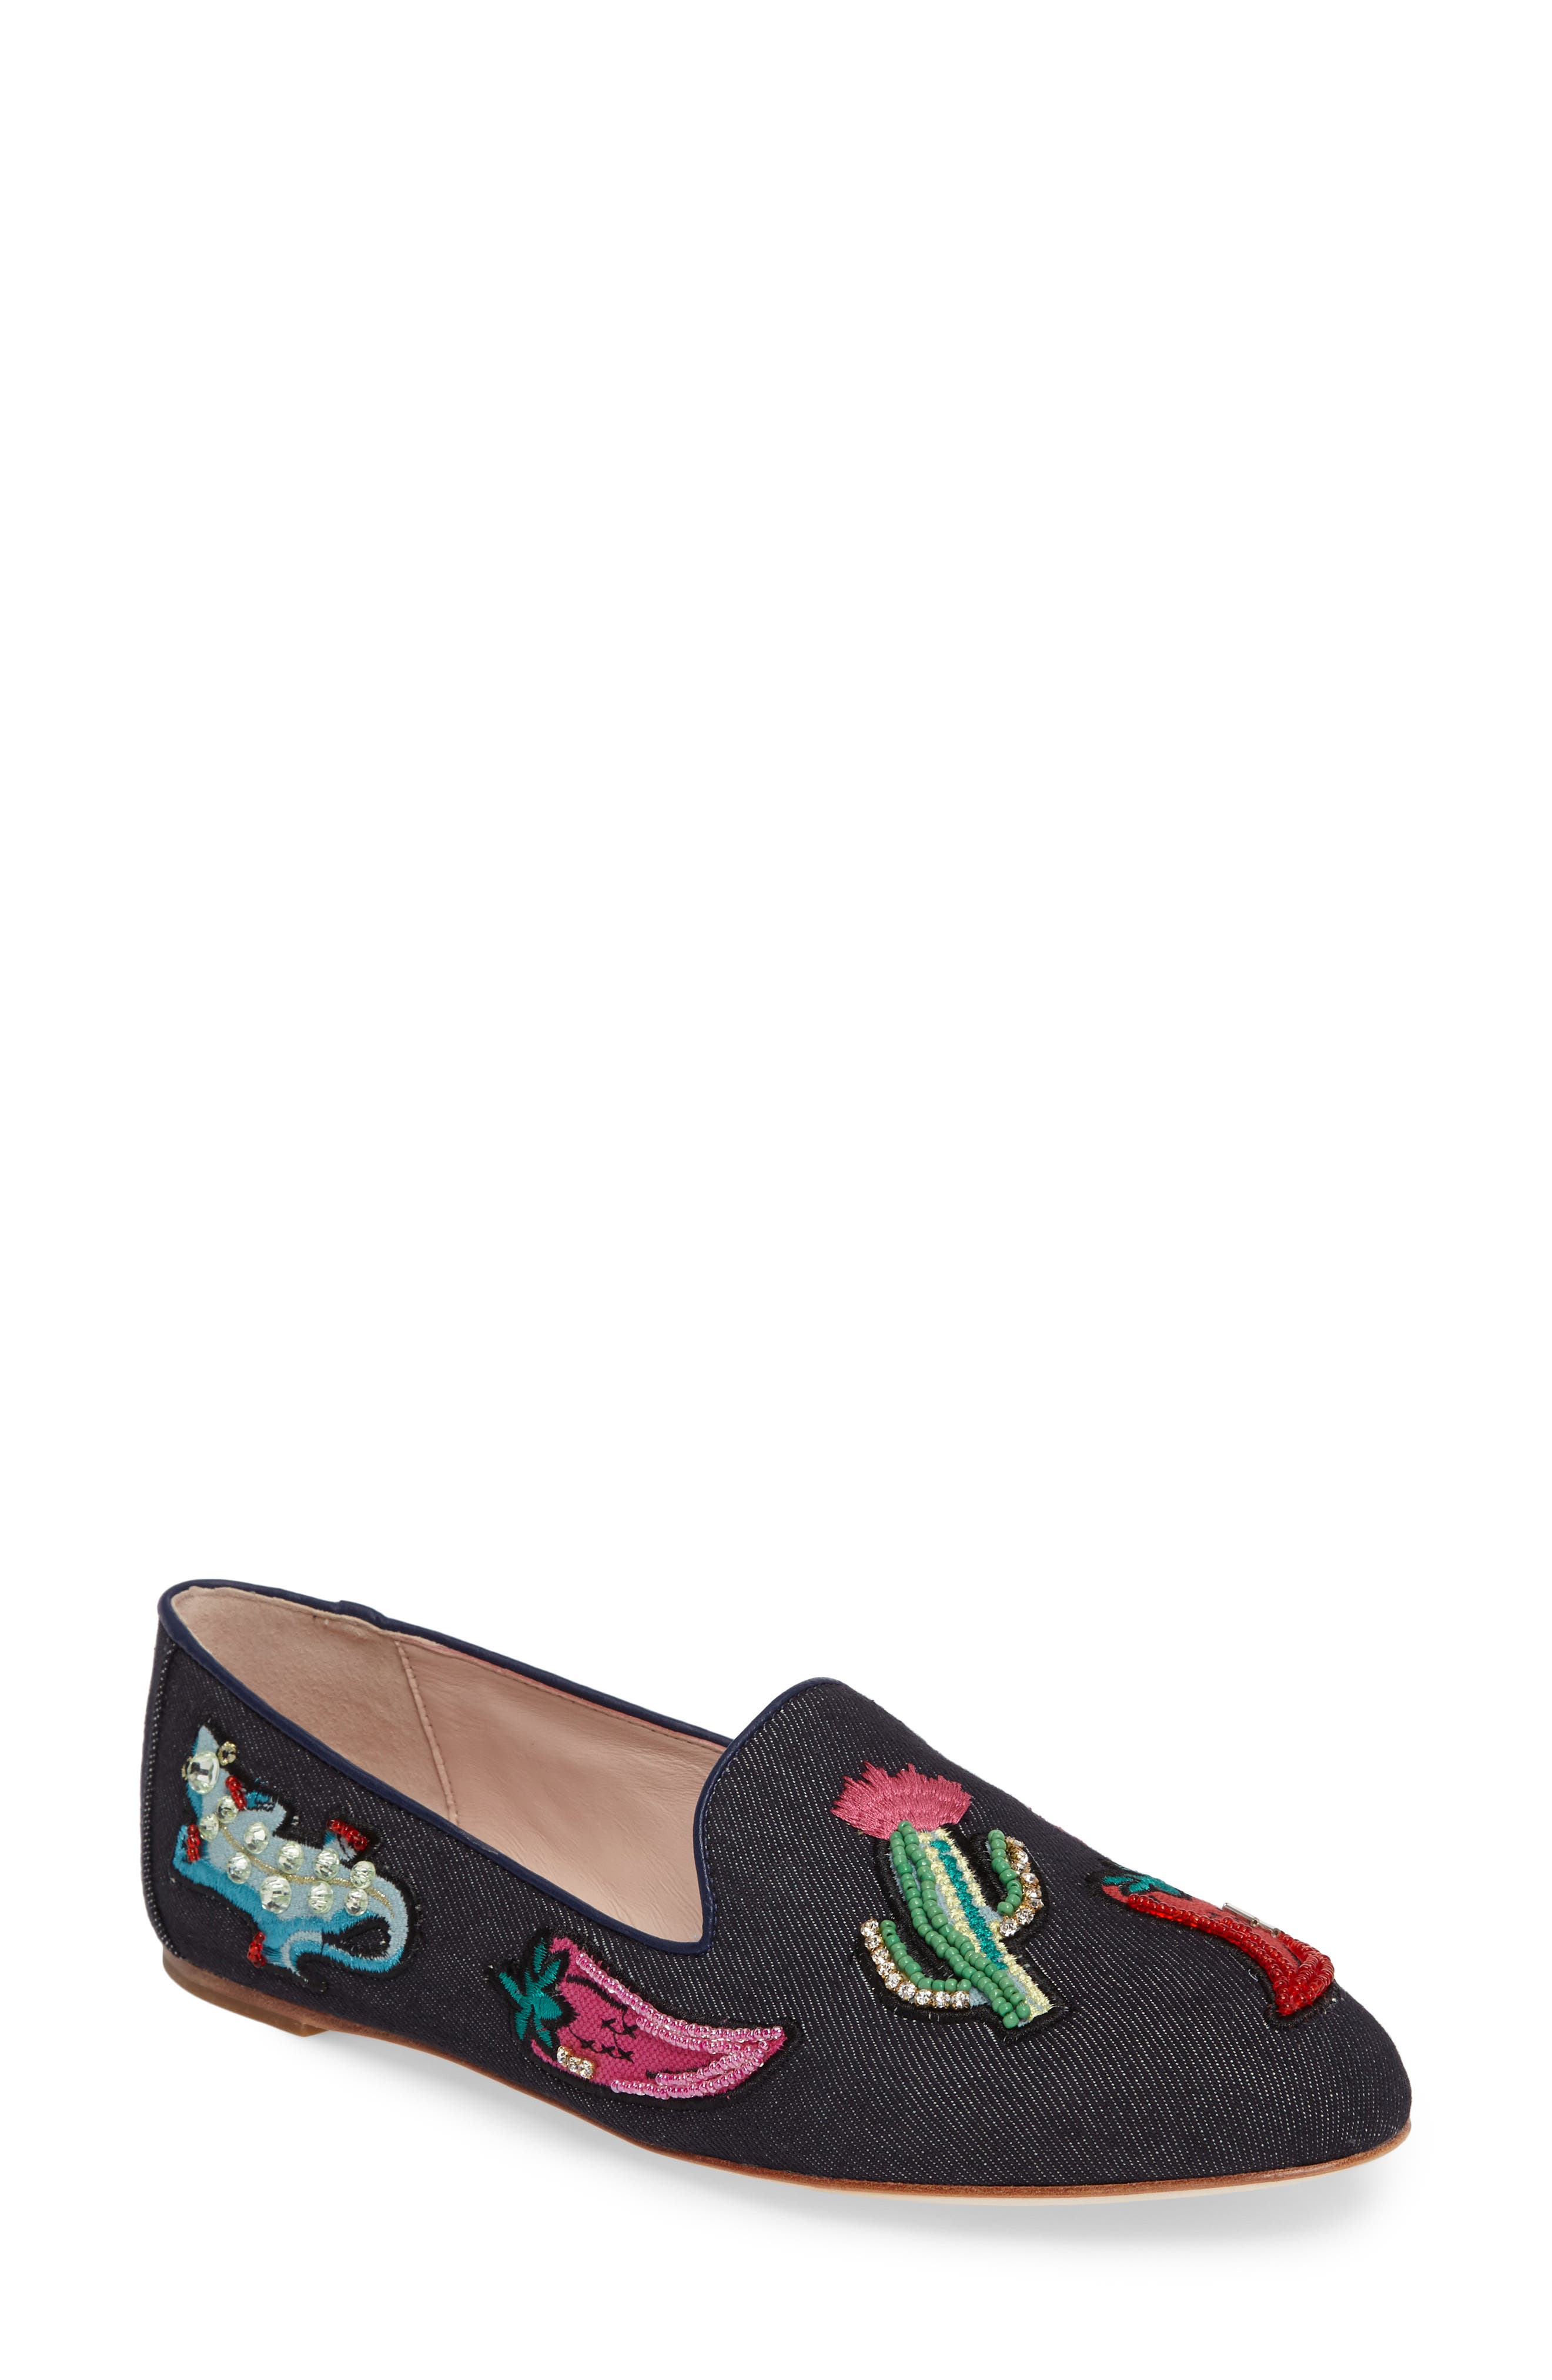 Alternate Image 1 Selected - kate spade new york saville embroidered loafer (Women)